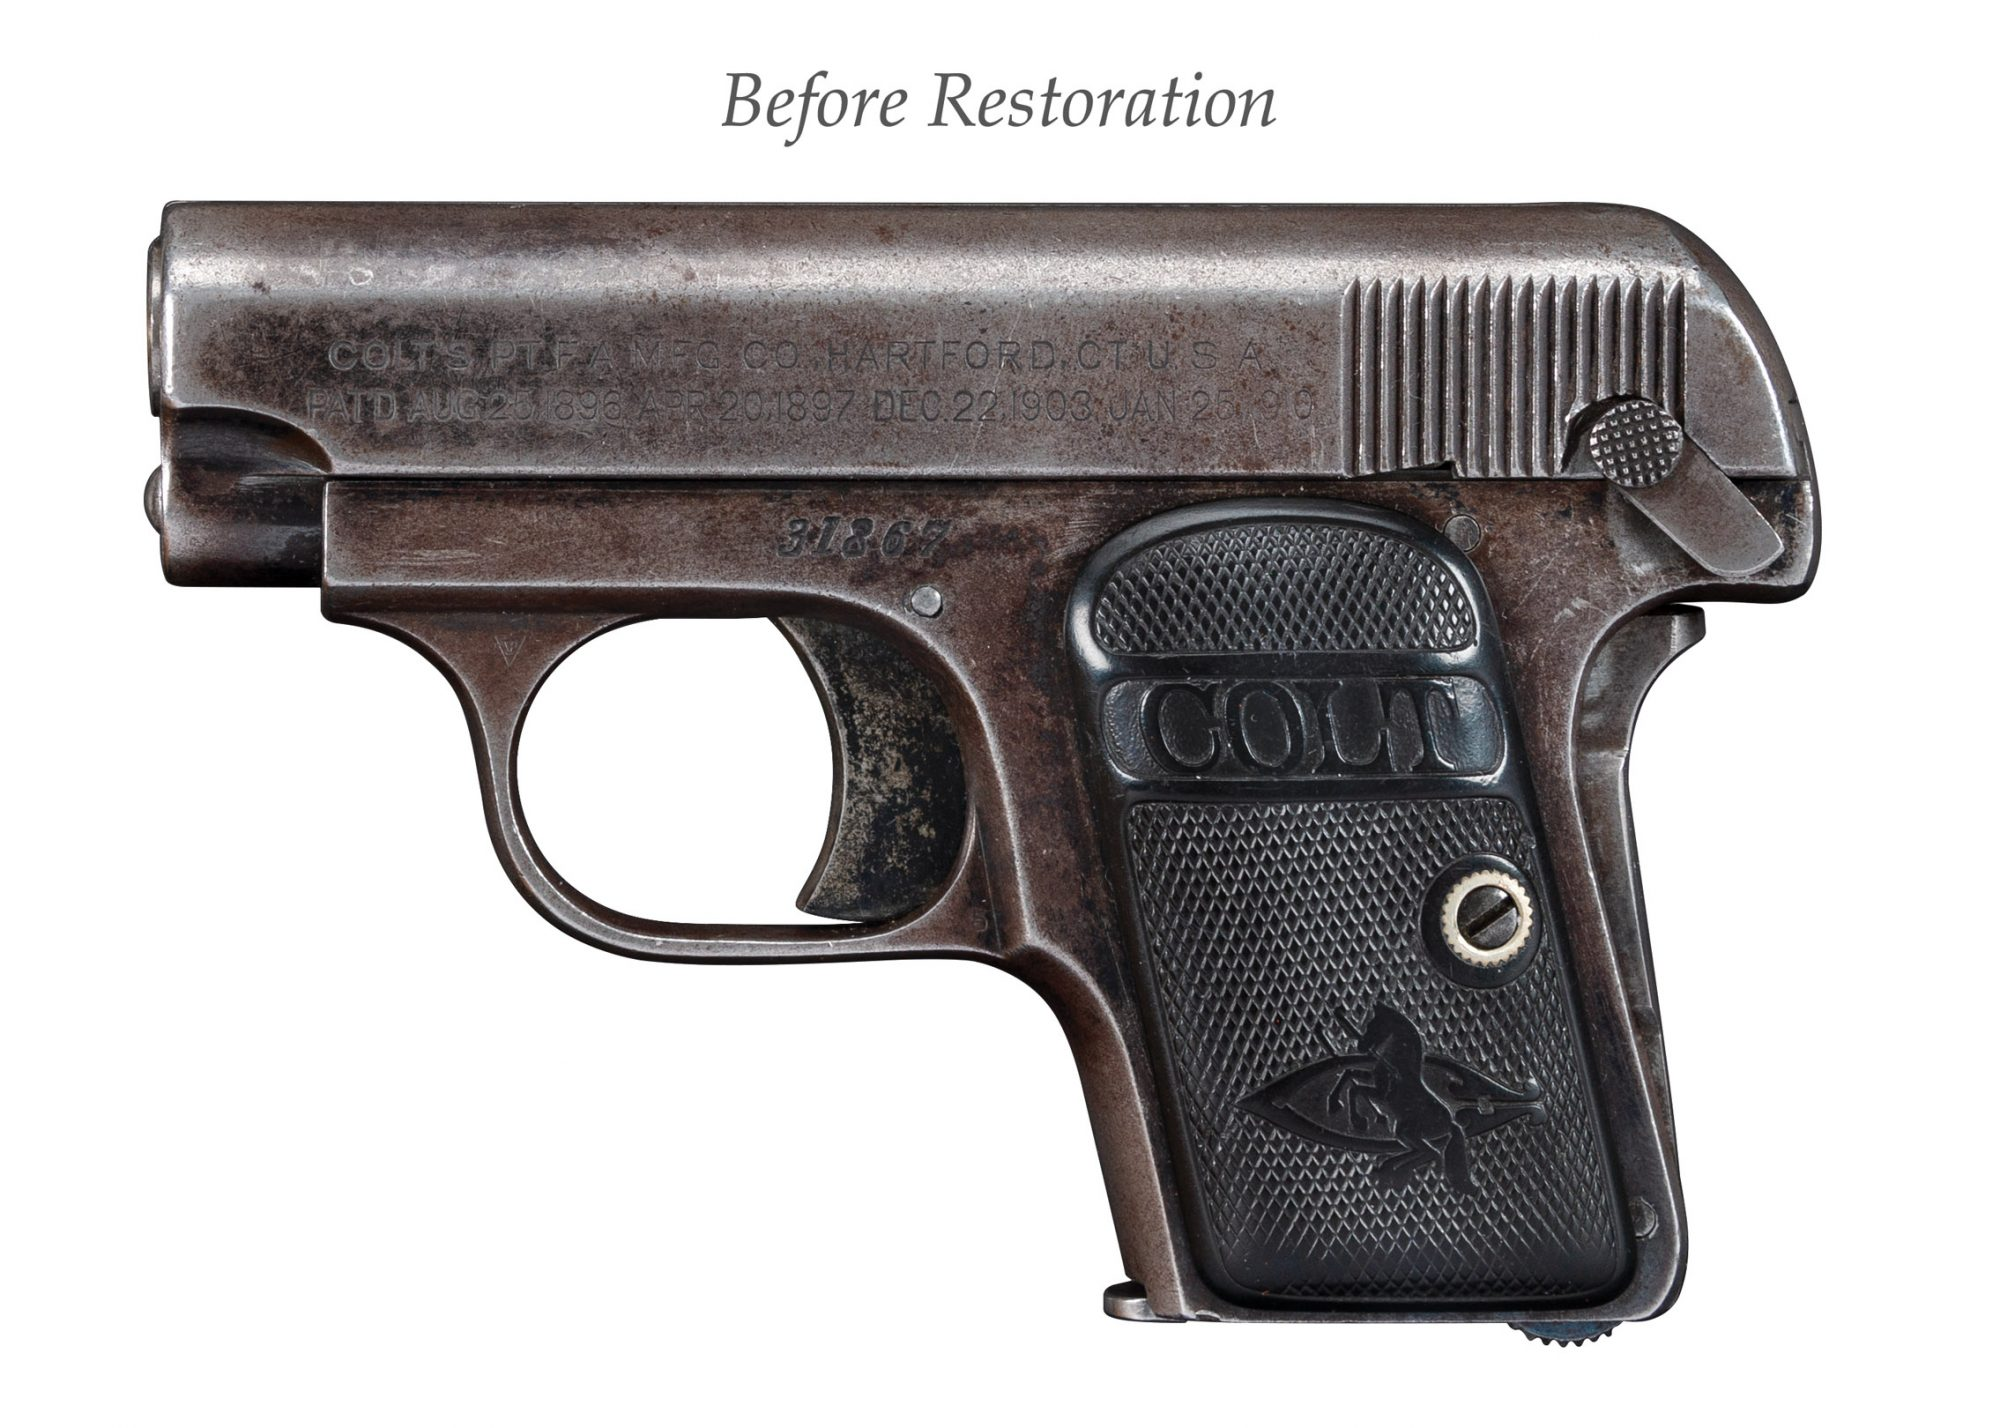 Photo of a Colt 1908 Vest Pocket, before restoration by Turnbull Restoration